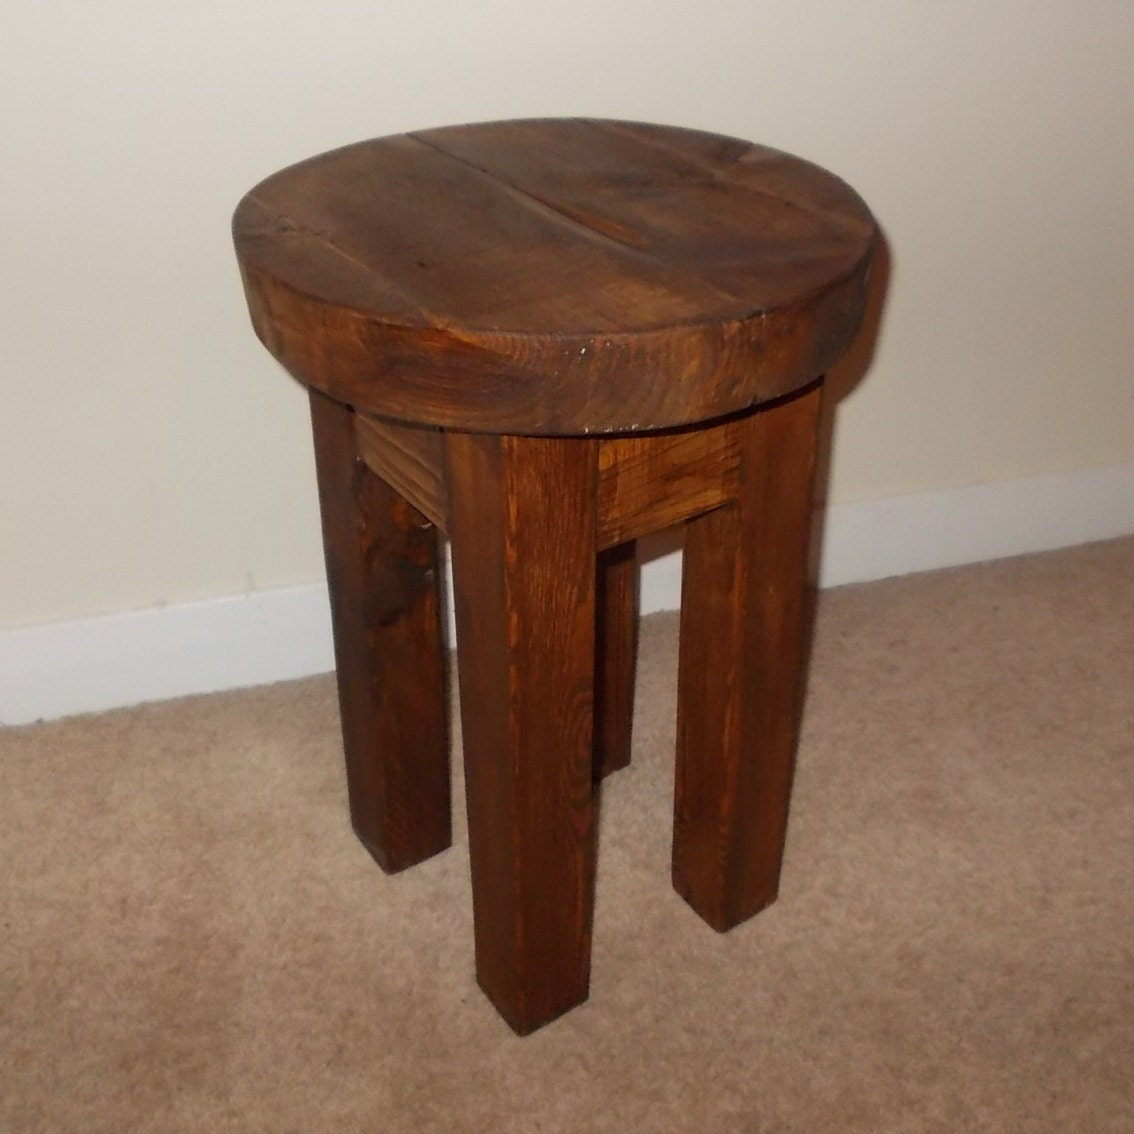 New hand made rustic solid wooden stool bar